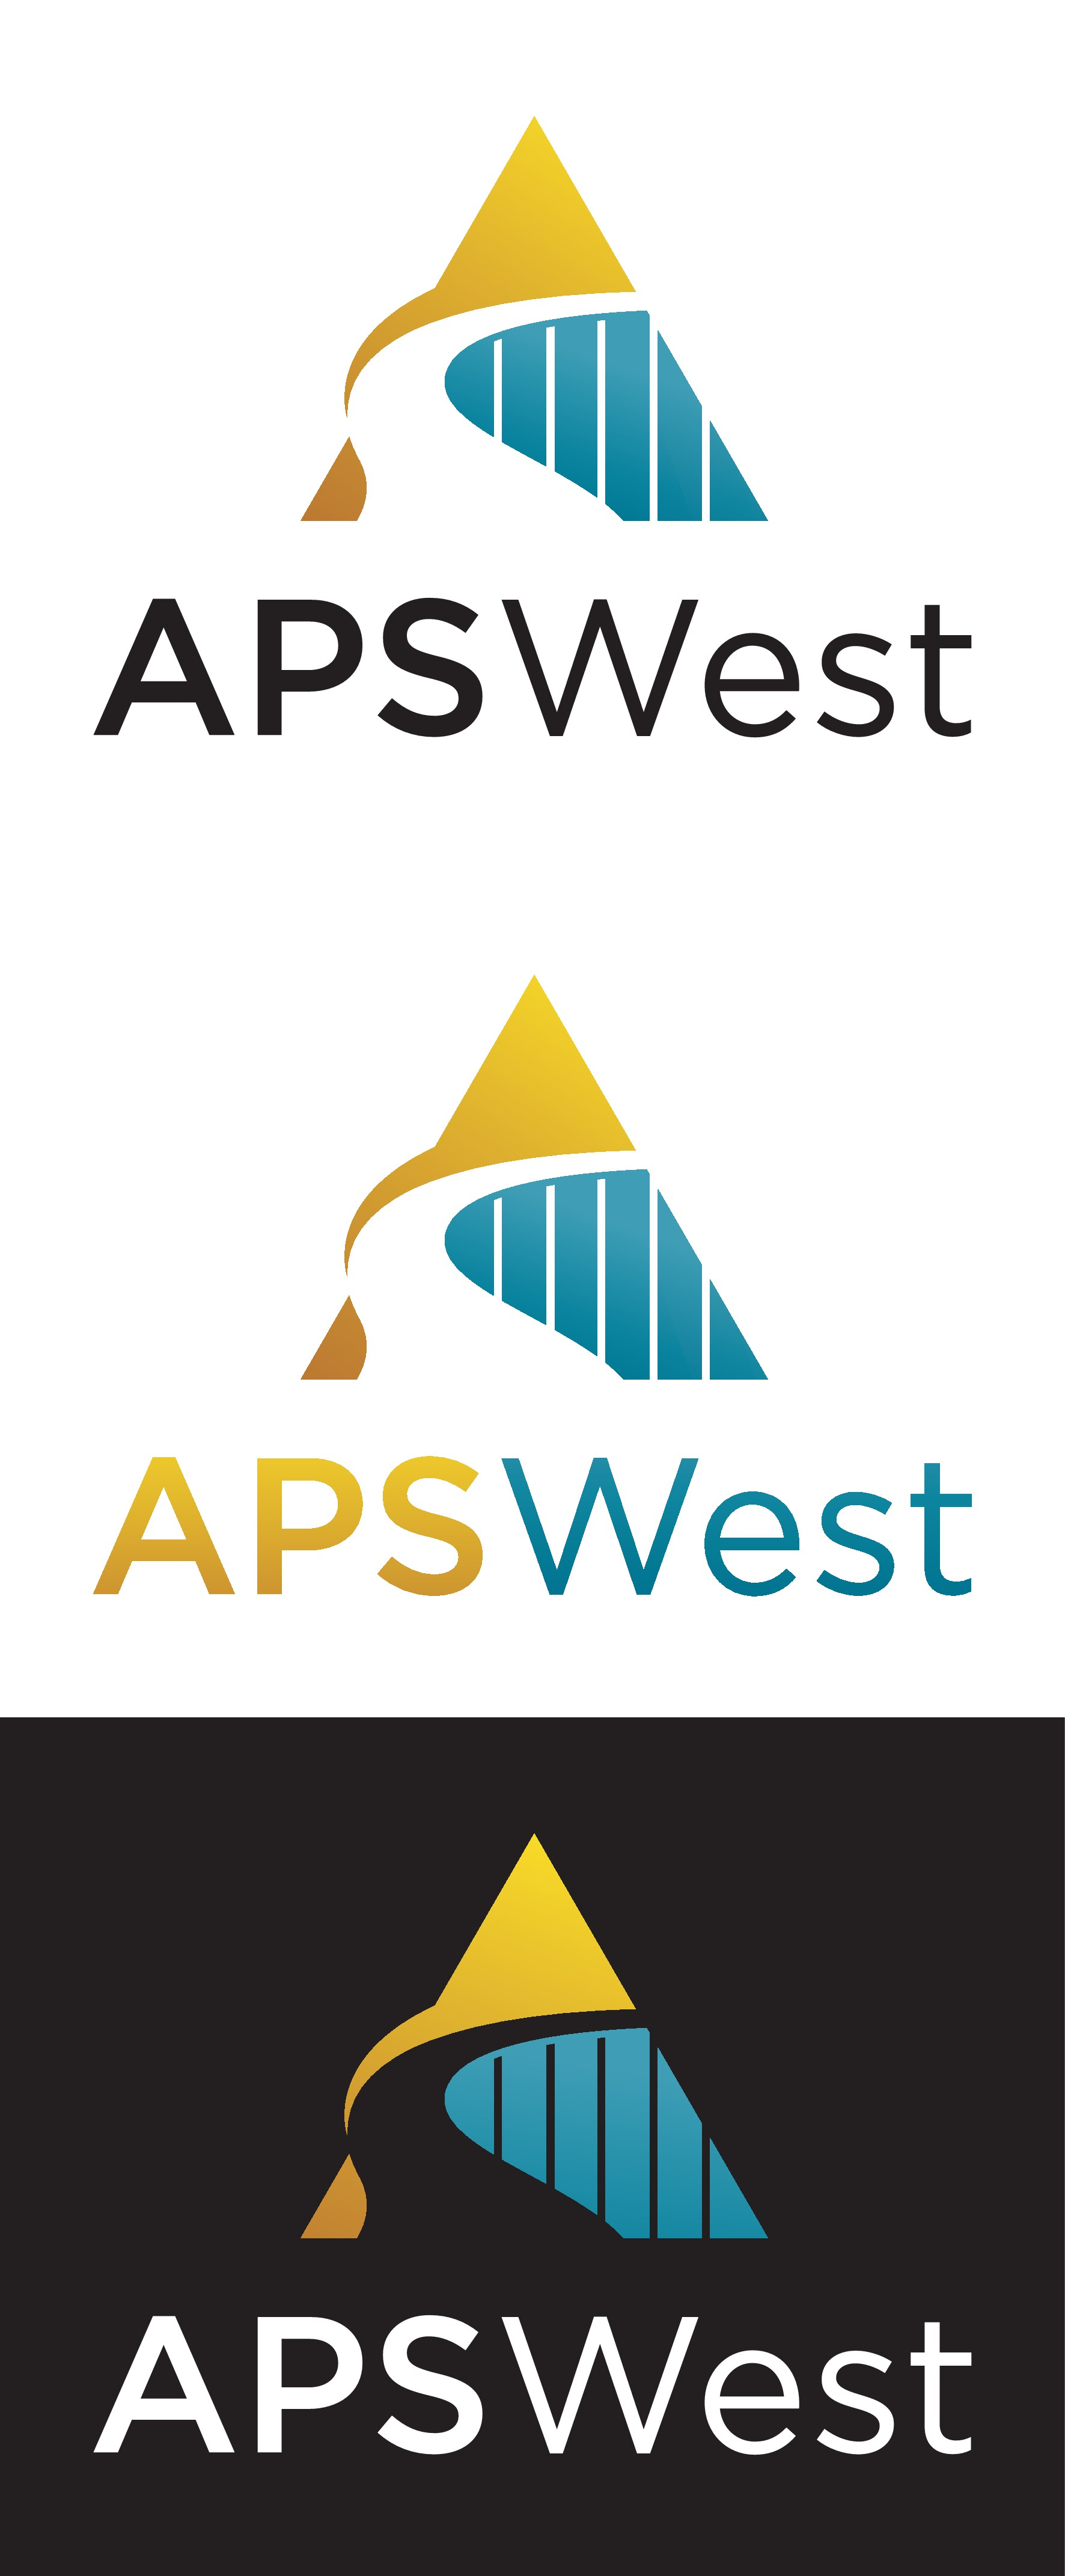 APS West needs your creative brilliance!